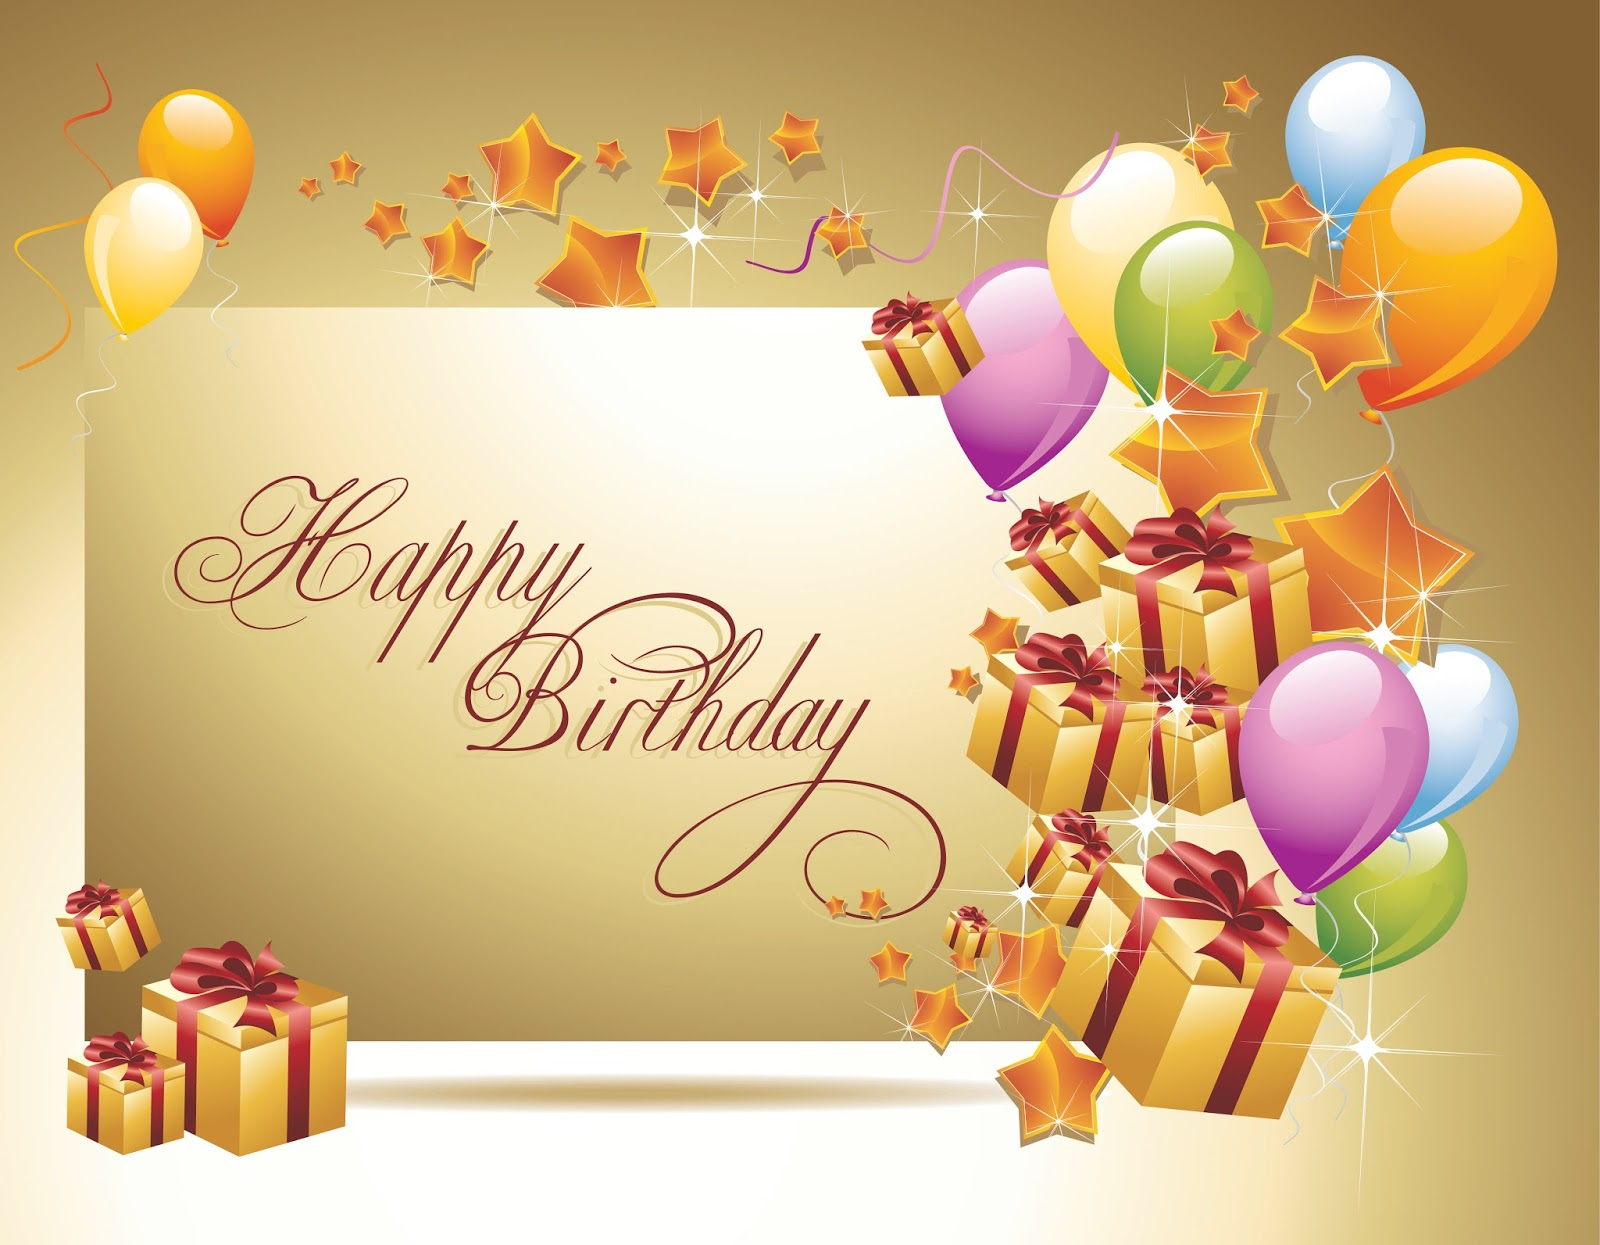 50 Birthday Wishes And Messages With Images Quotes Good Happy Birthday Wishes For